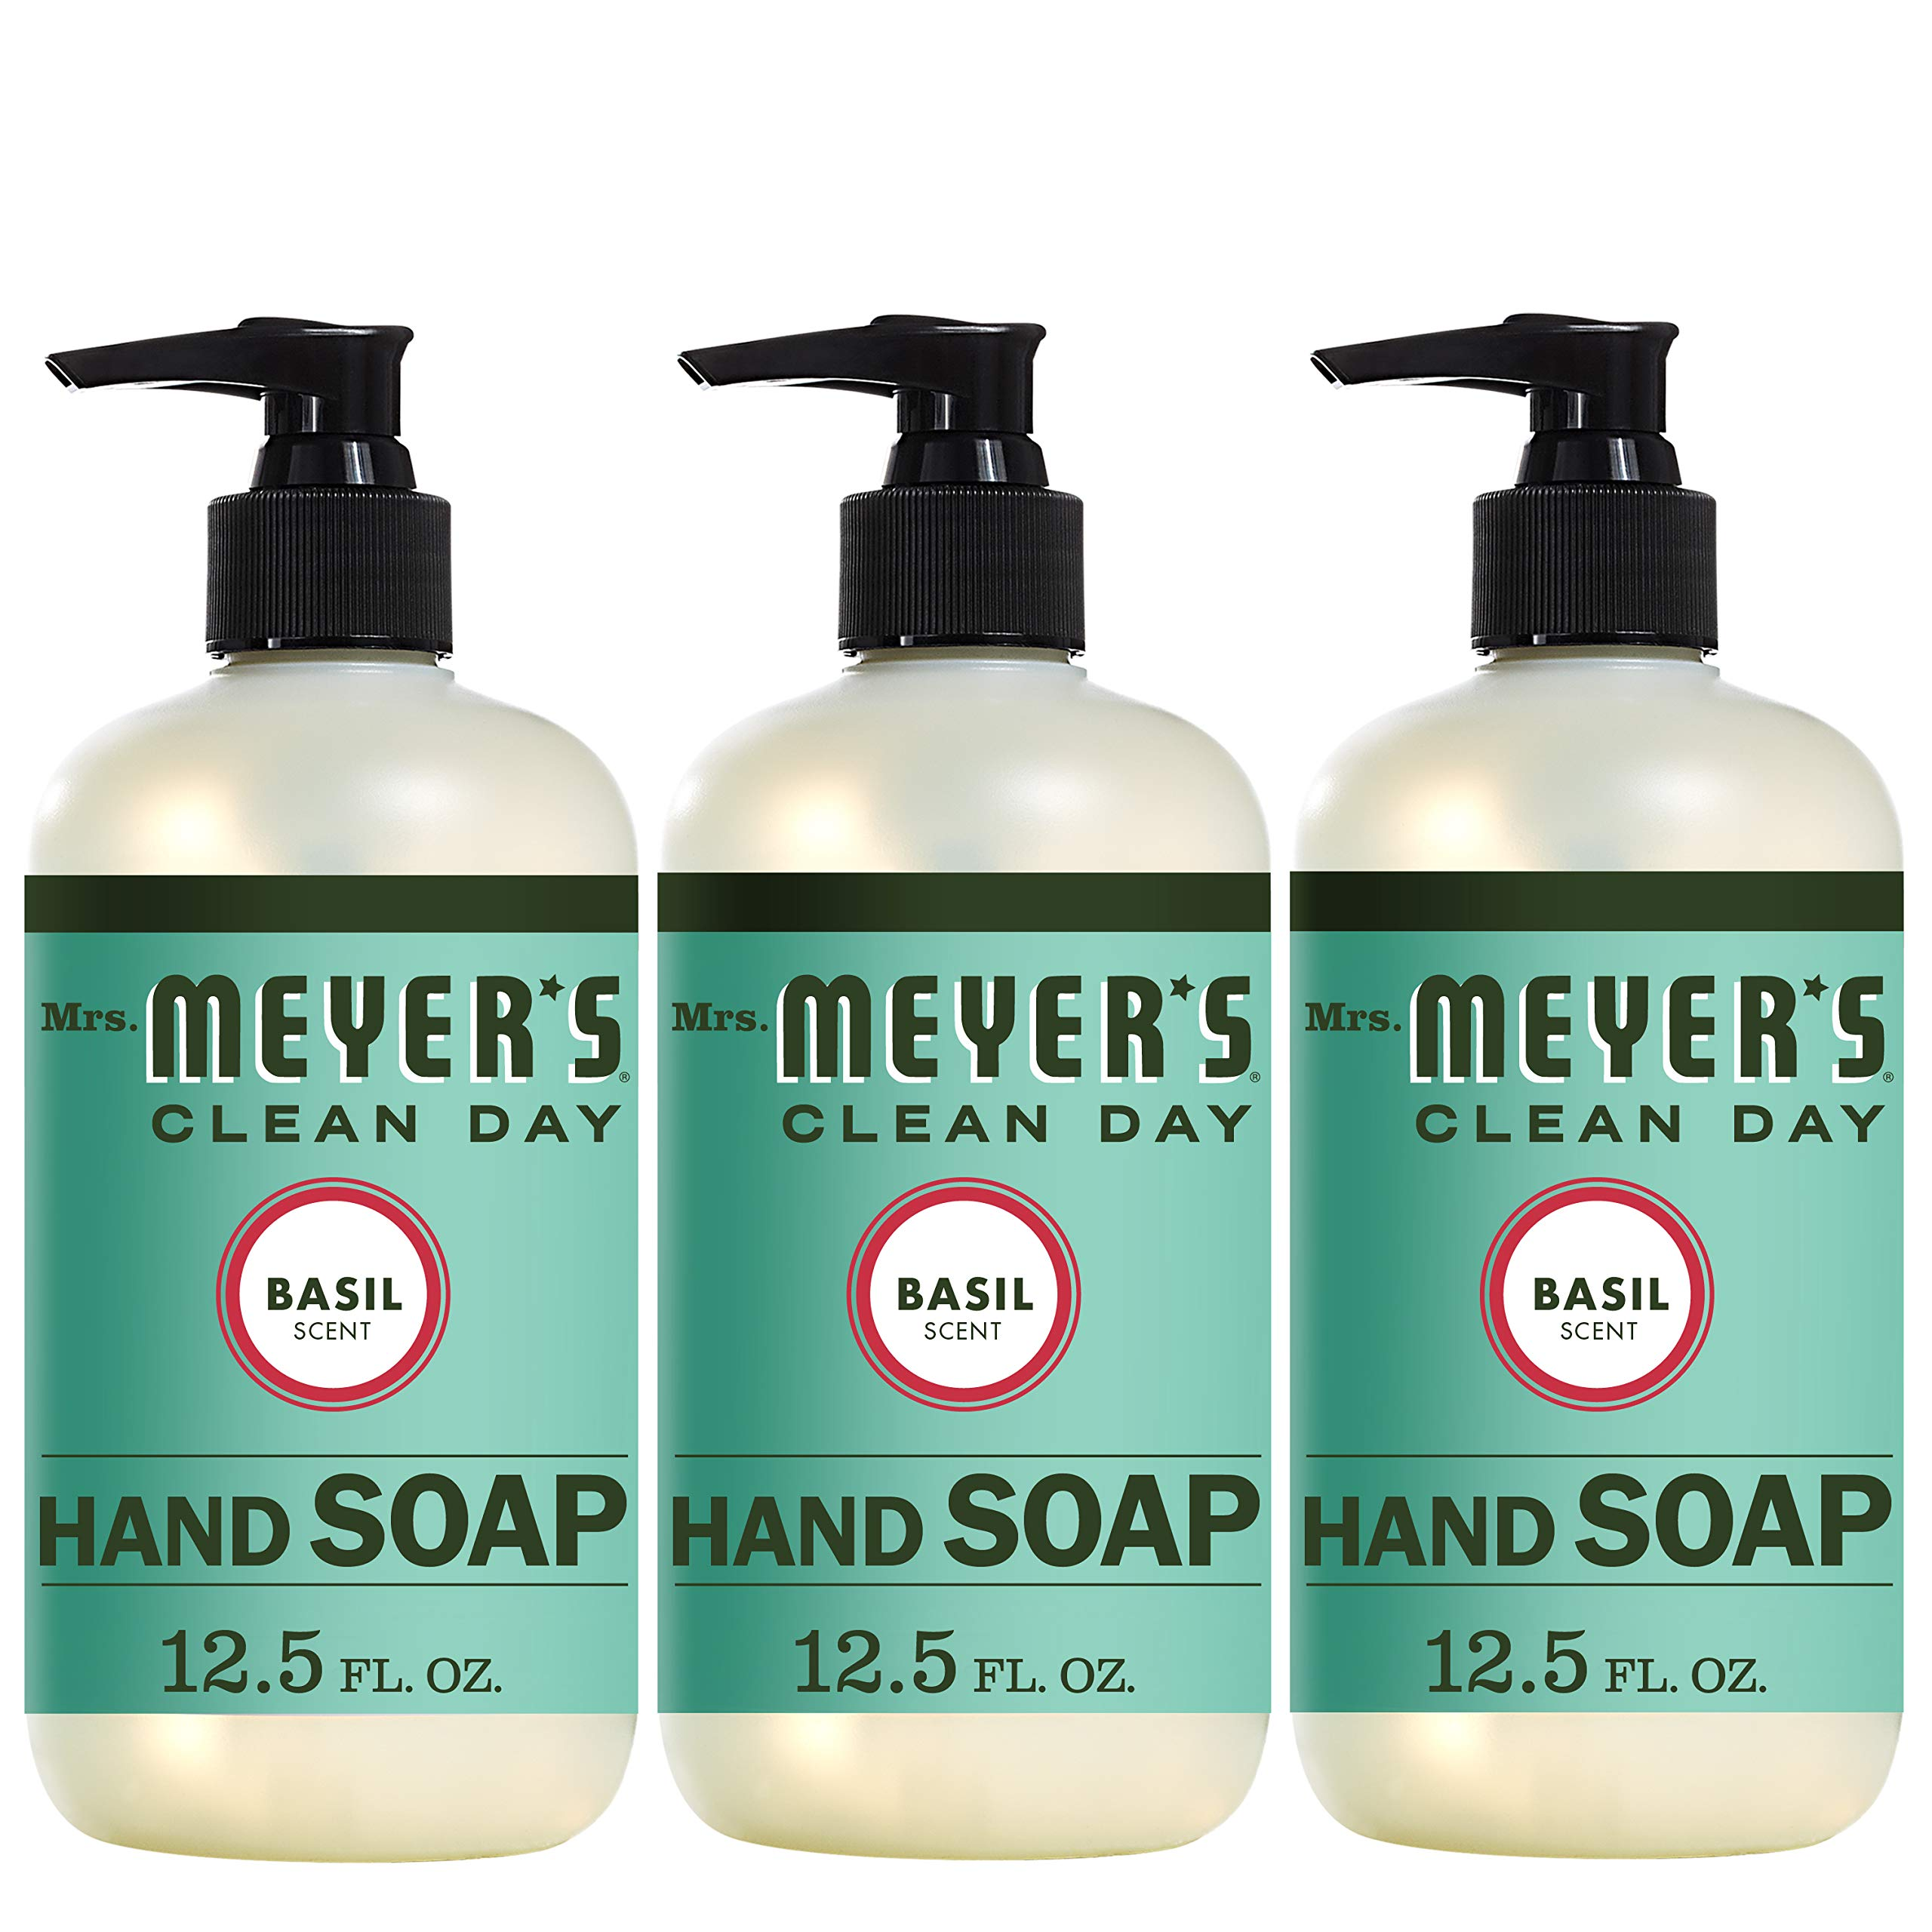 Mrs. Meyer's Clean Day Liquid Hand Soap, Basil Scent, 12.5 Fl Oz, Pack of 3